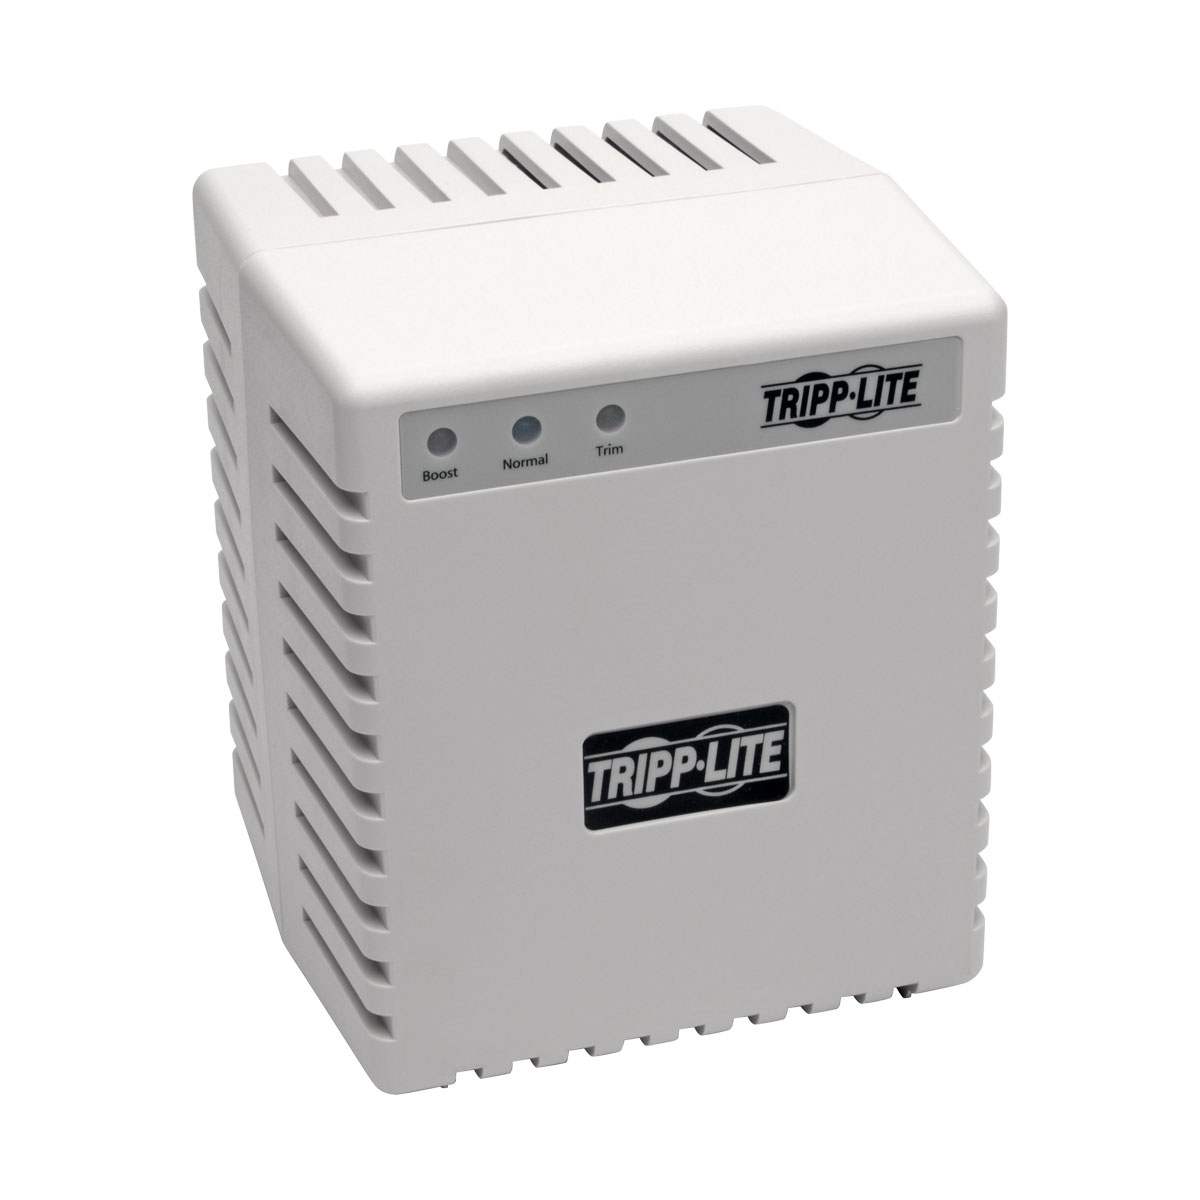 TRIPP LITE LR604 600W 230V POWER CONDITIONER WITH AUTOMATIC VOLTAGE REGULATION (AVR), AC SURGE PROTECTION, 3 OUTLETS, UNIPLUGINT ADAPTER